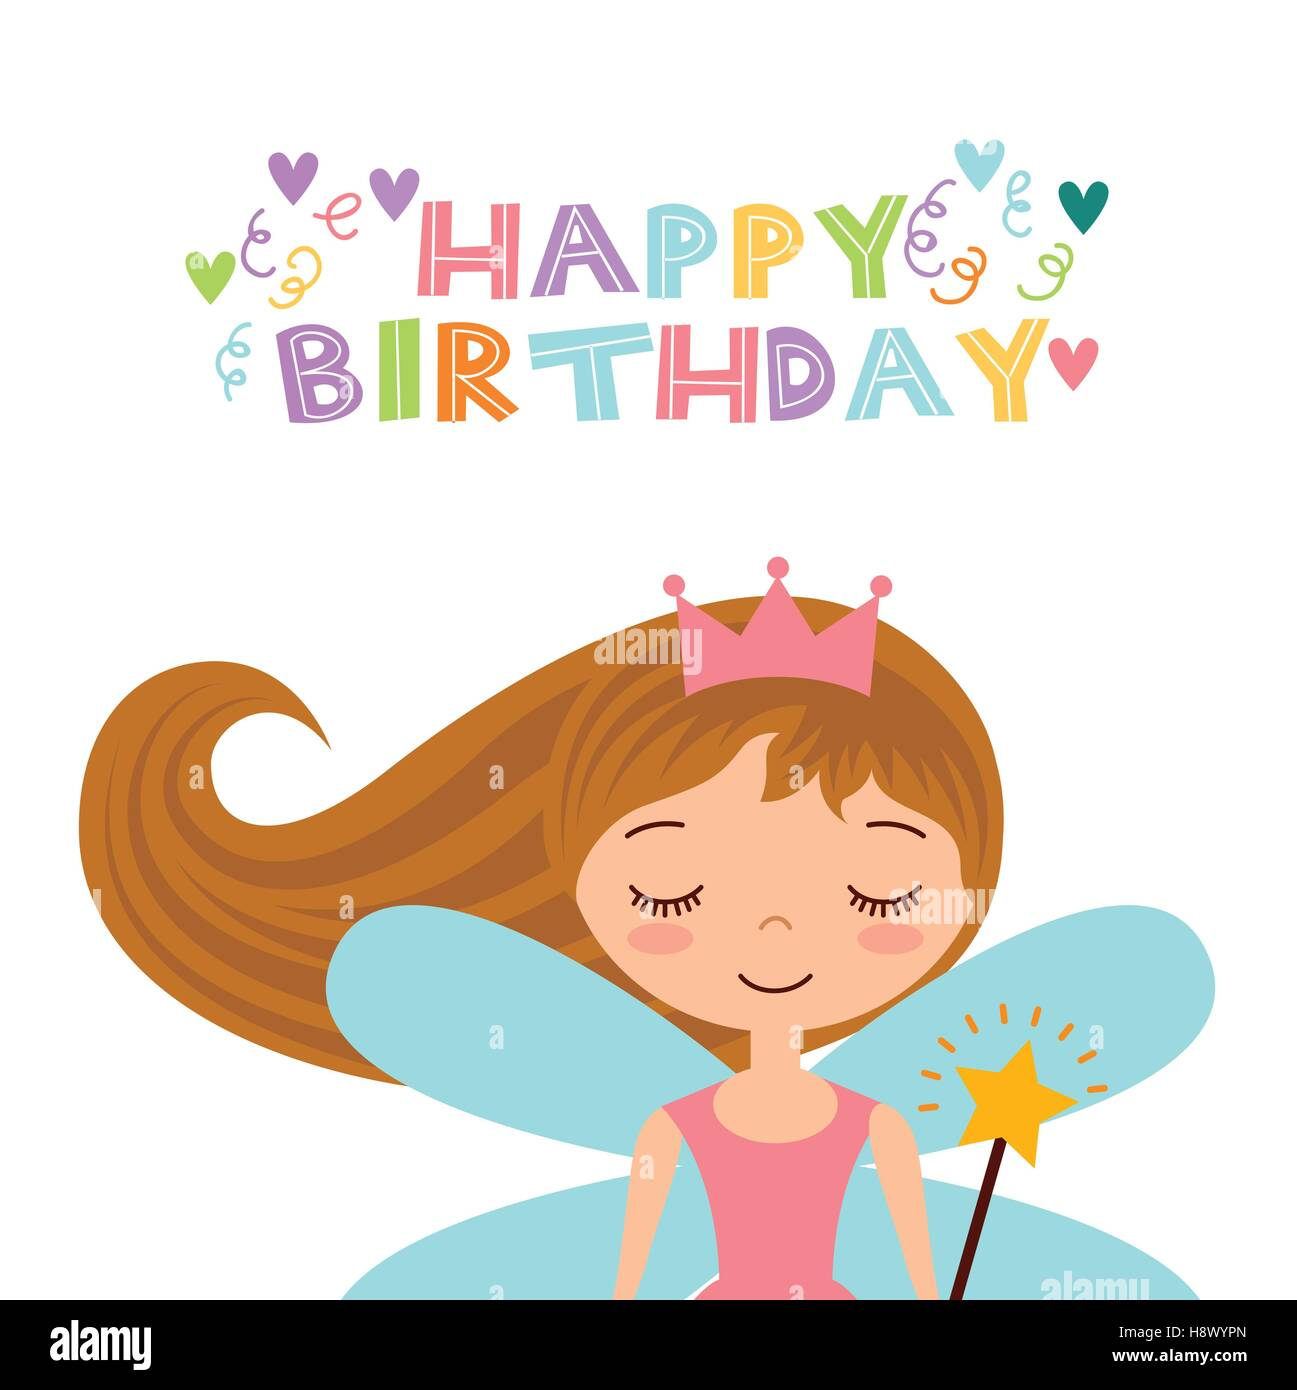 Happy birthday card with cute fairy girl icon over white background happy birthday card with cute fairy girl icon over white background colorful design vector illustration bookmarktalkfo Images